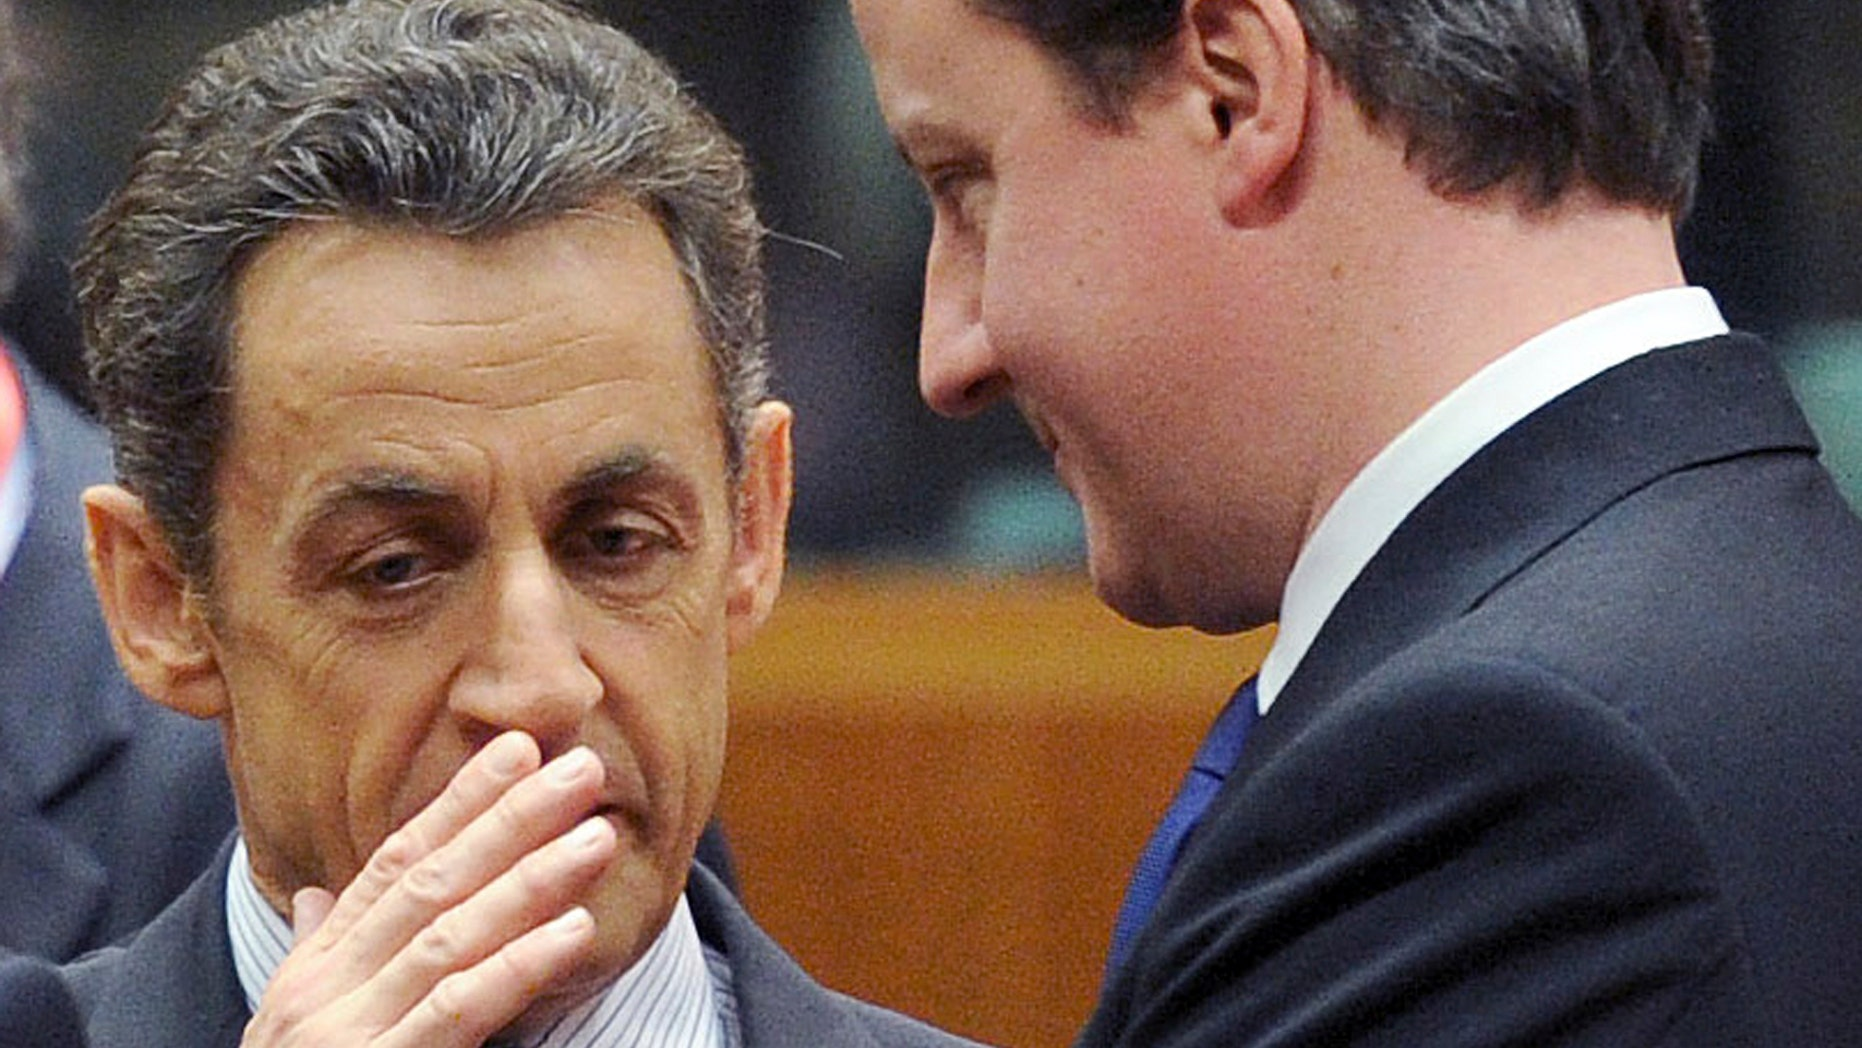 March 11: French President Nicolas Sarkozy, left, speaks with British Prime Minister David Cameron during an EU Summit in Brussels.